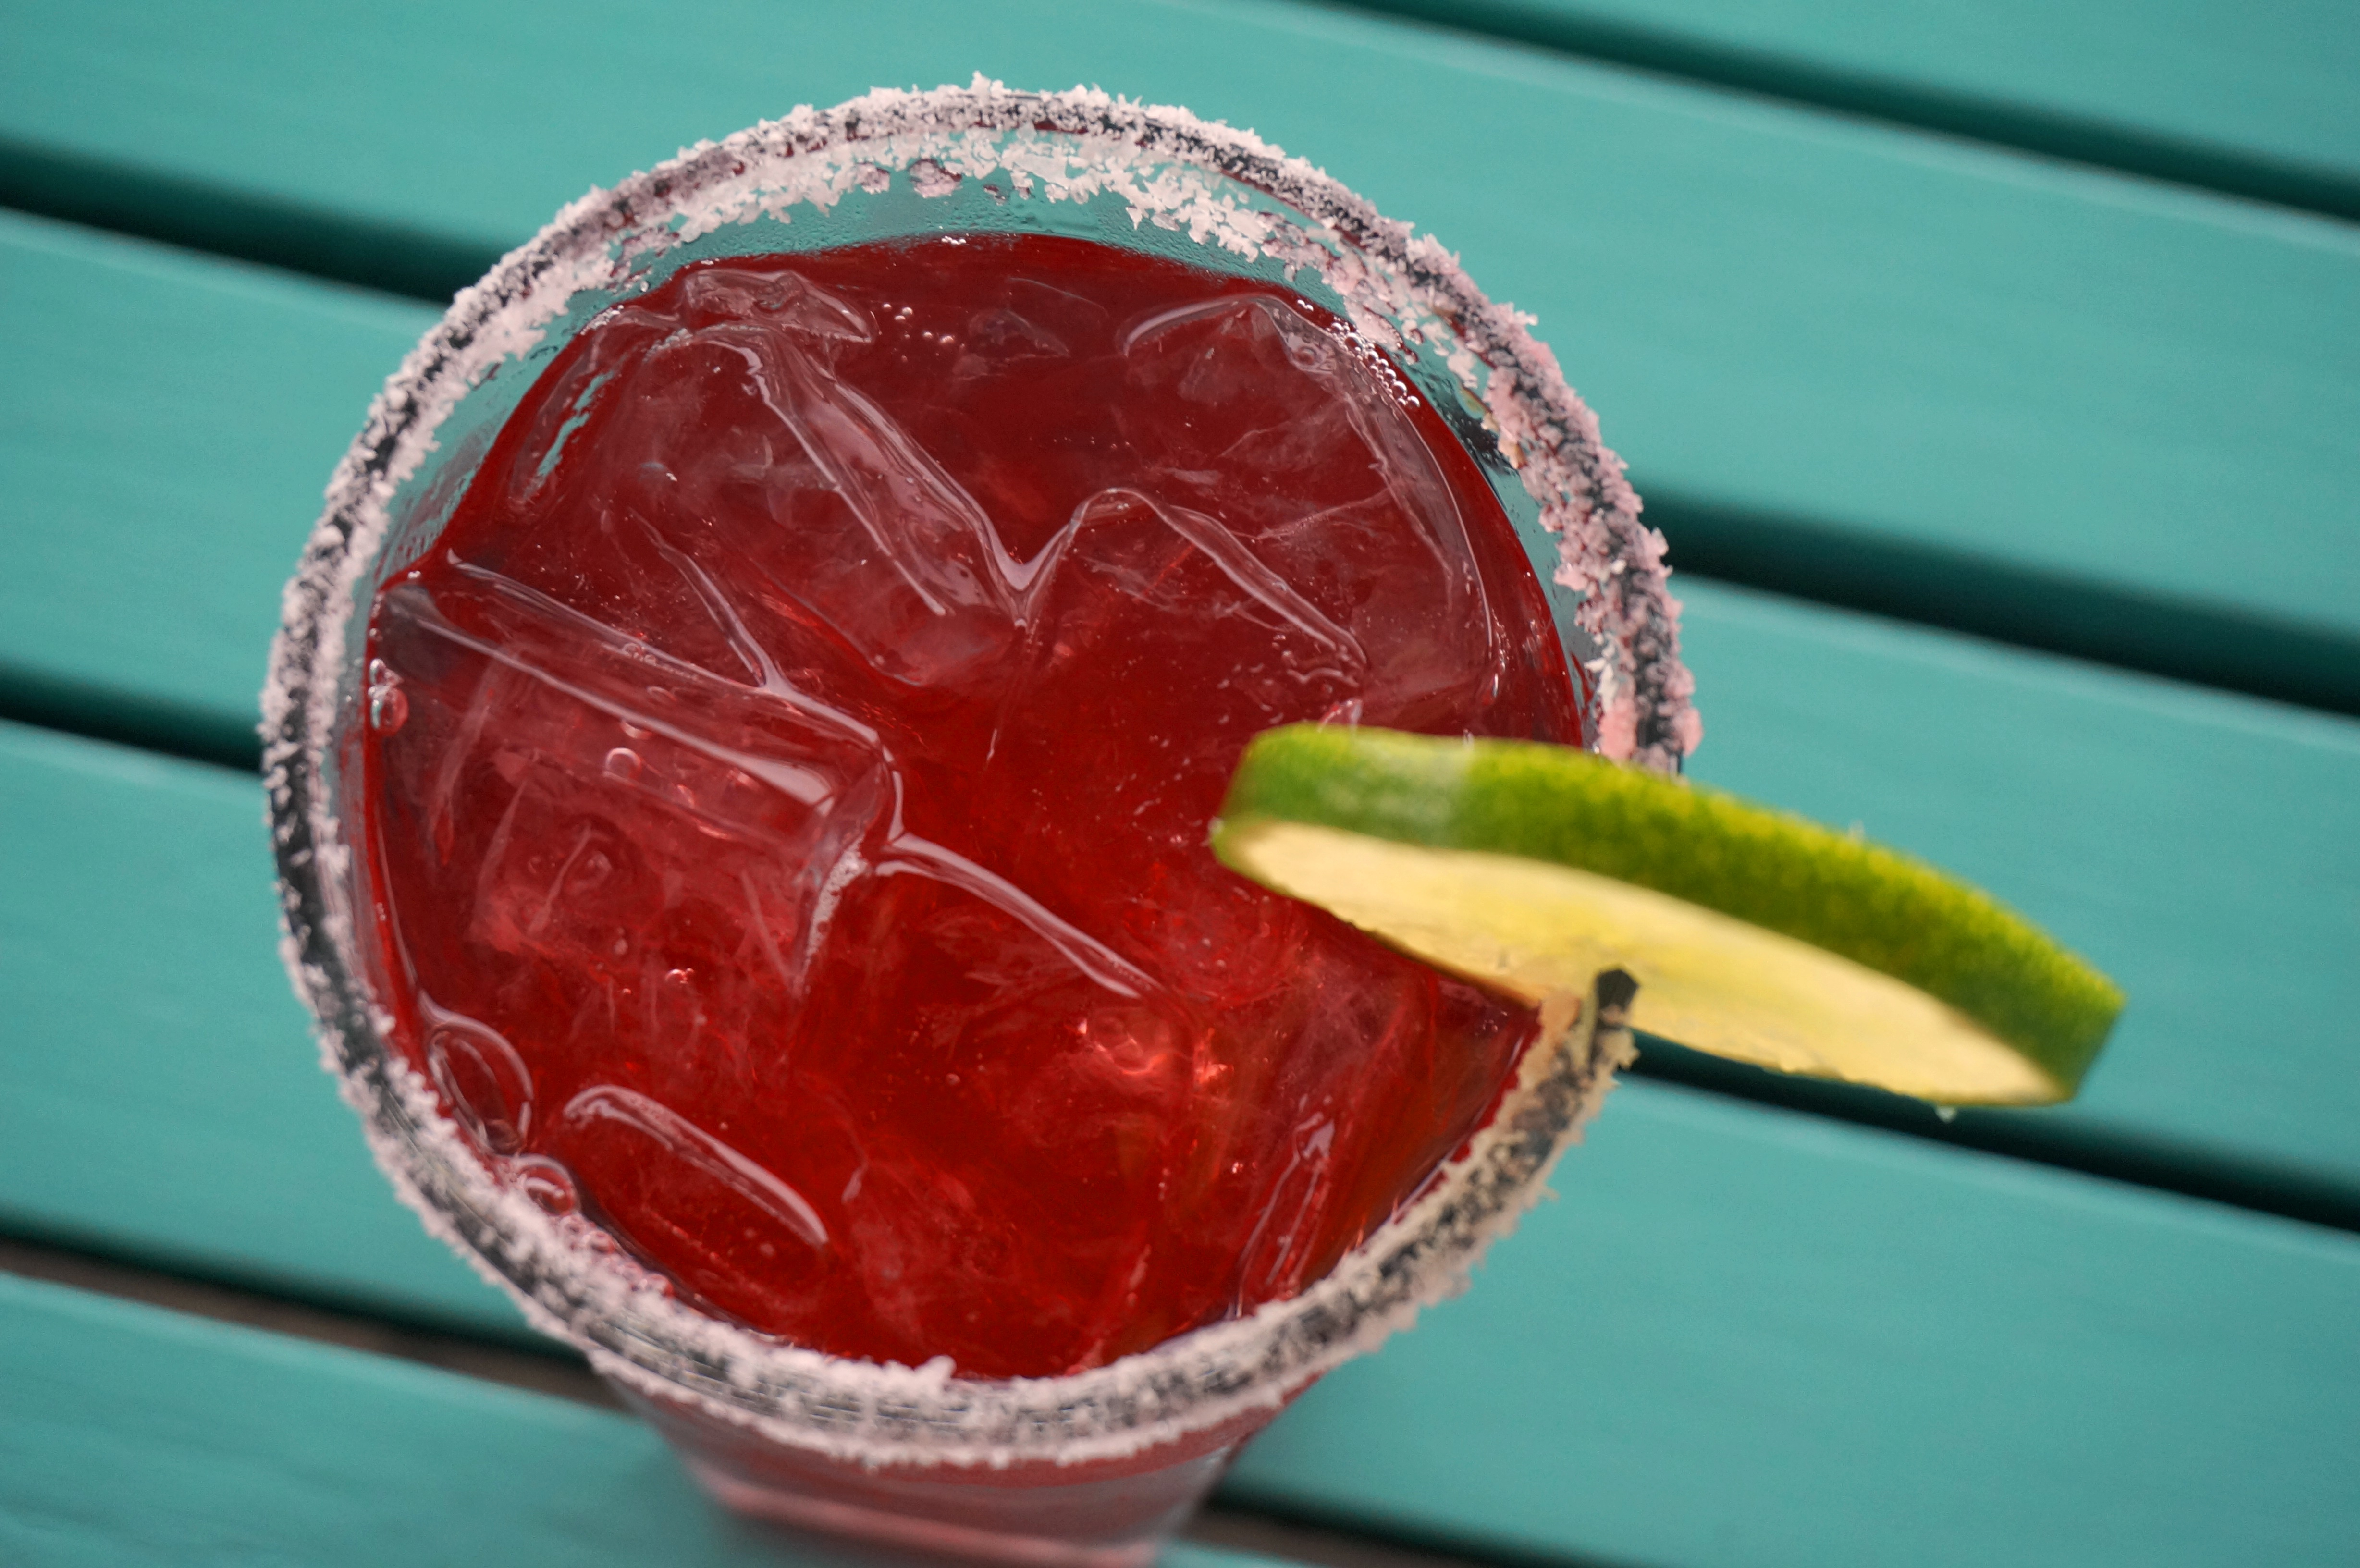 Painted House Margarita at Henry's Bar at the Harbor View Hotel